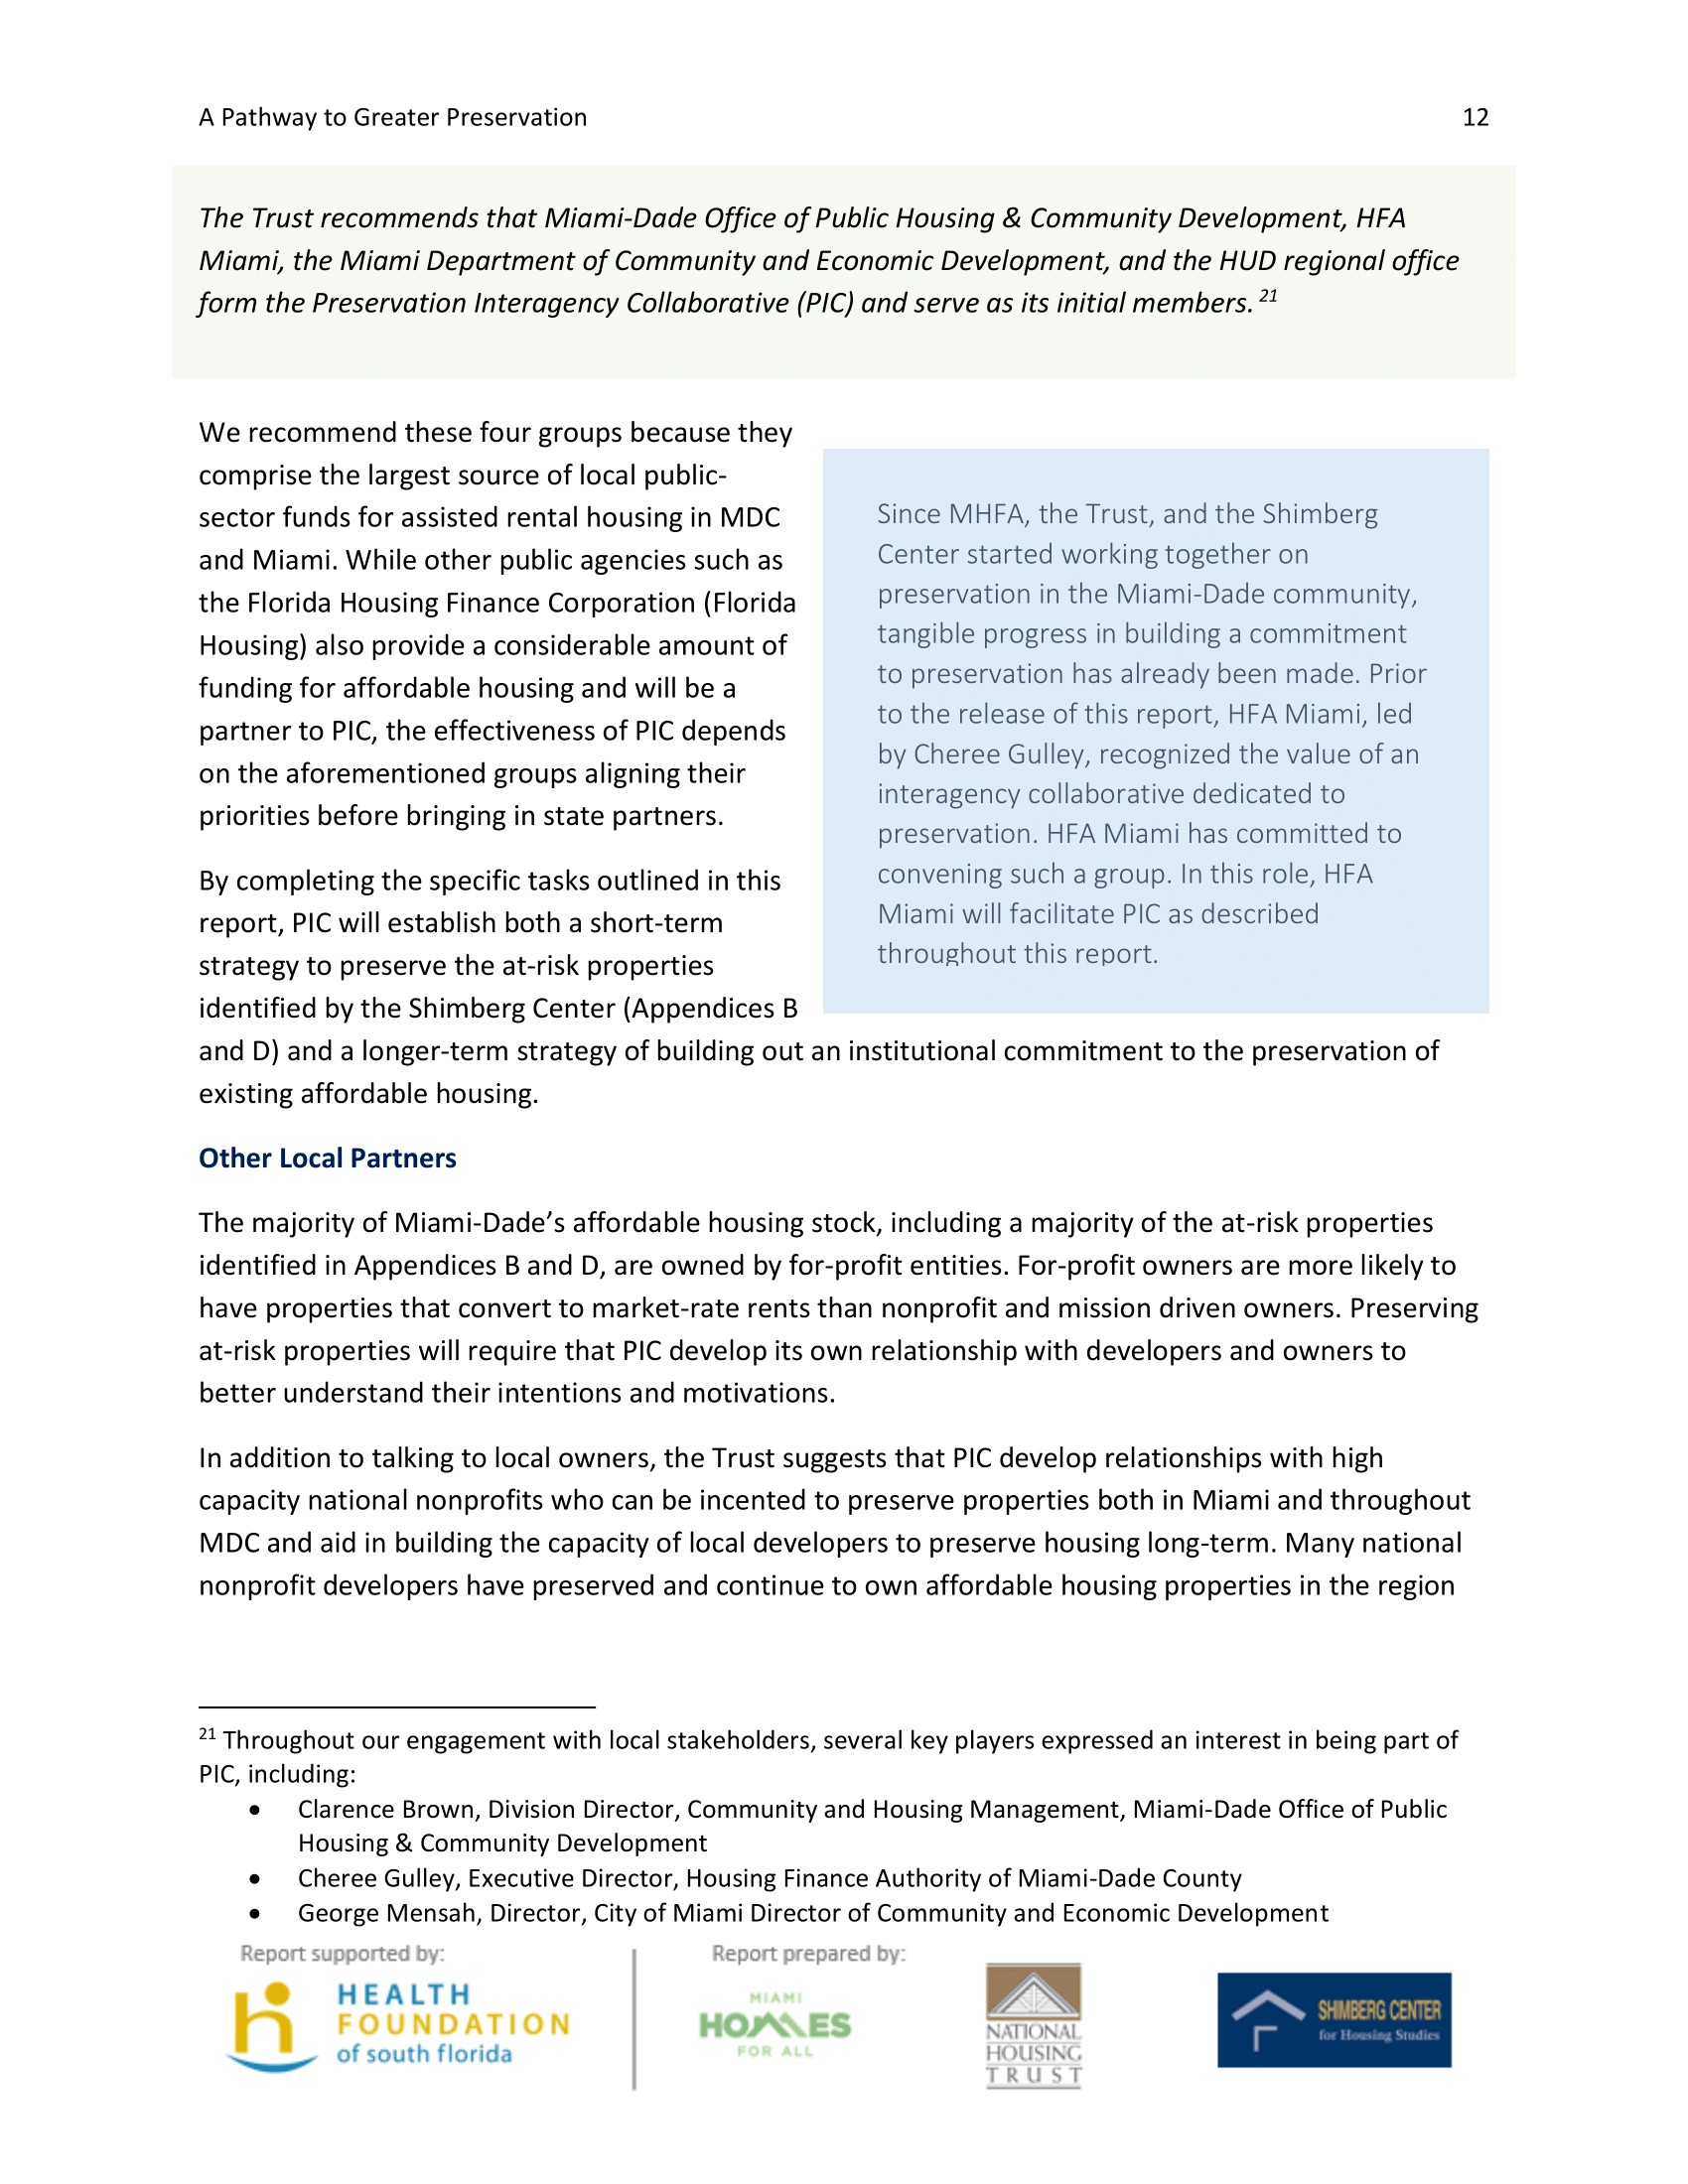 A Pathway to Greater Preservation - February 2018-20.png